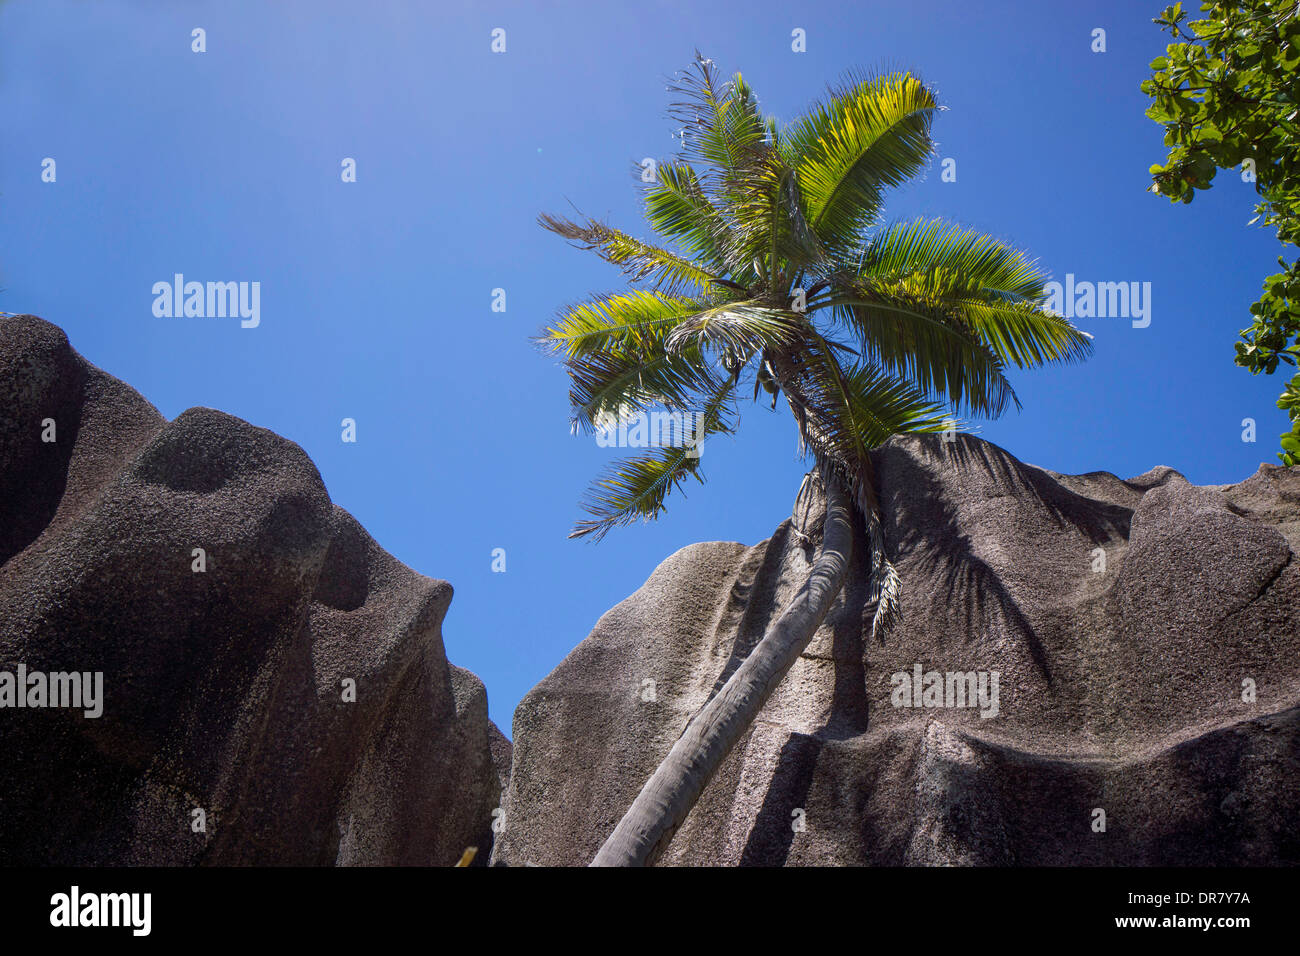 Typical rock formations in the Seychelles, Anse Union, La Digue, Seychelles - Stock Image